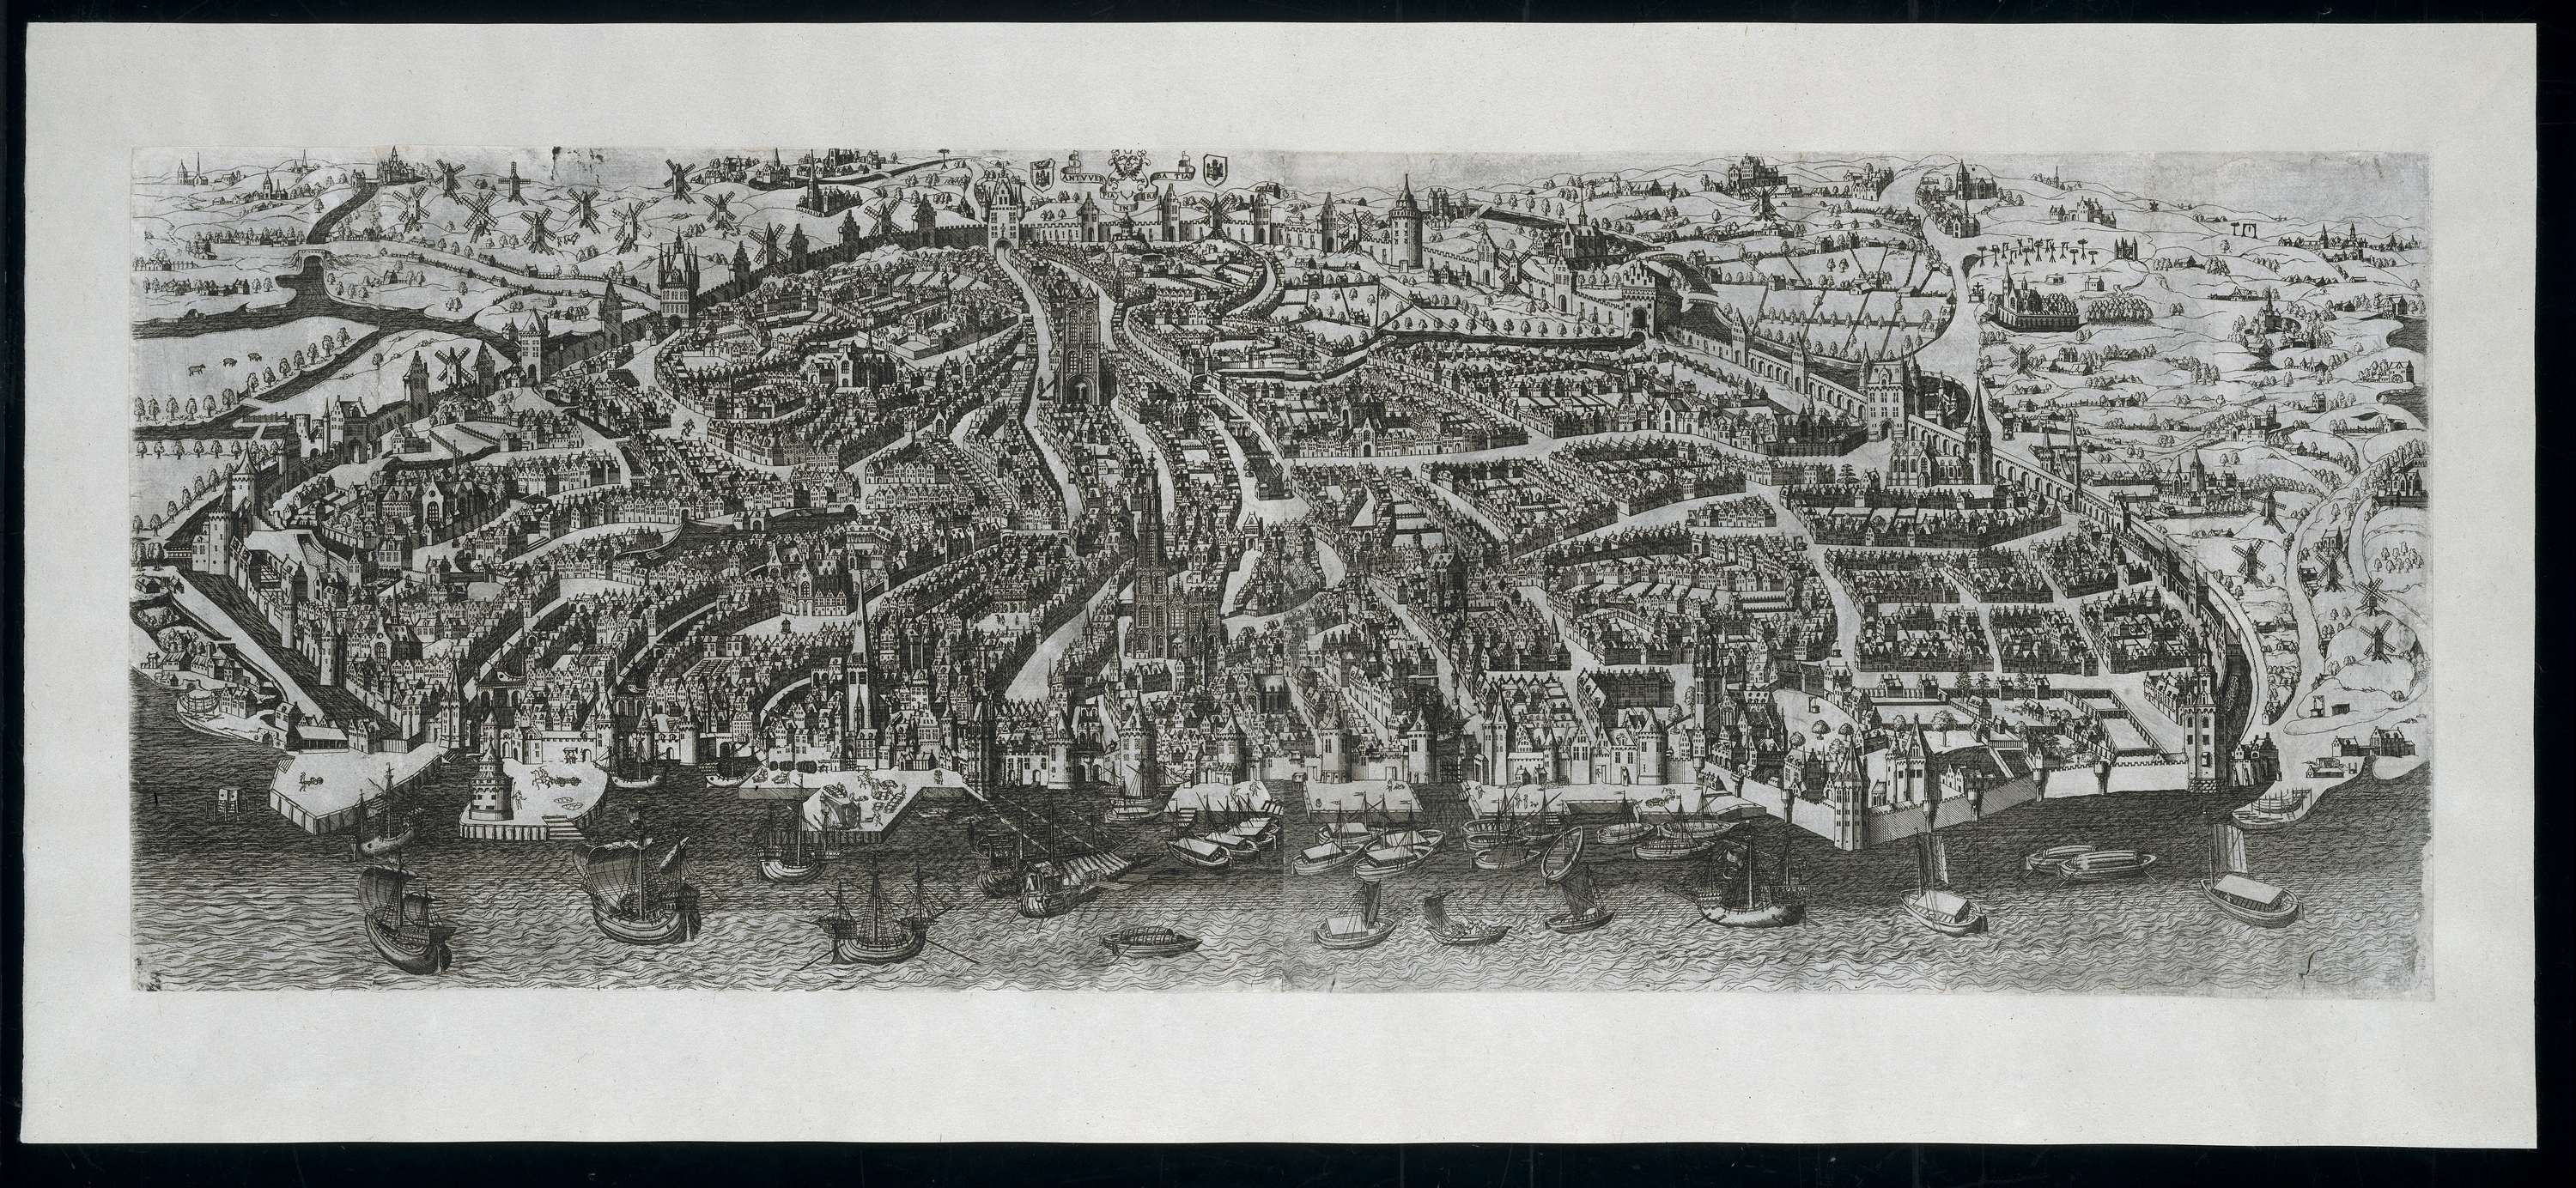 An impression of 16th century Antwerp by Gerard Horenbout (source commons.wikimedia.org)